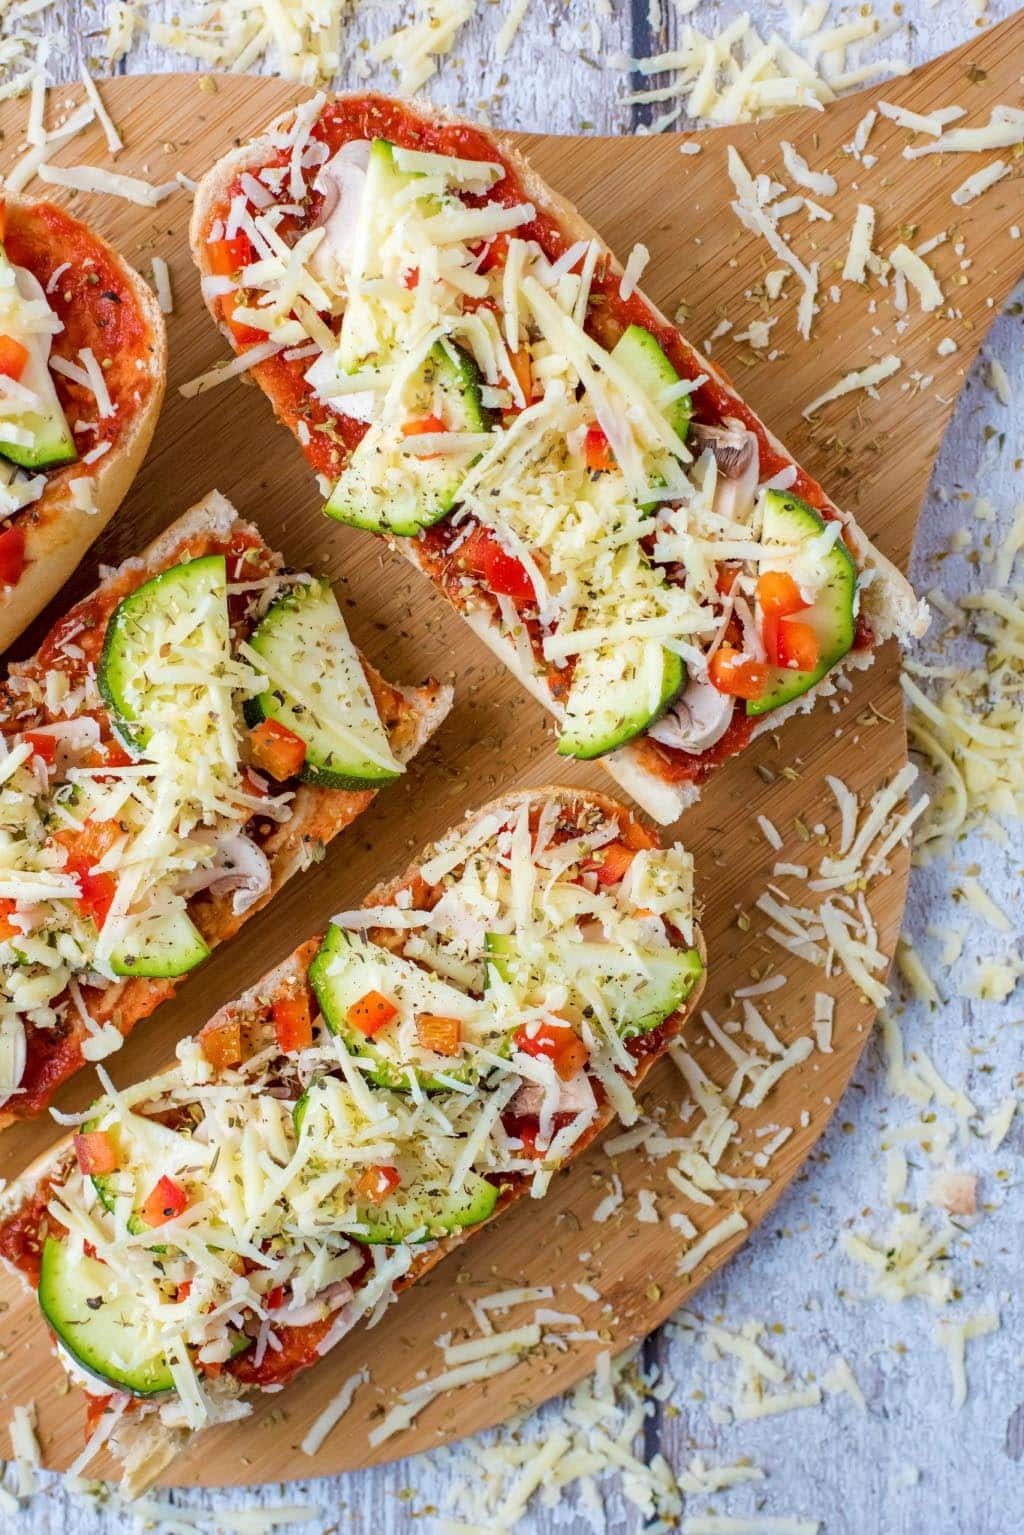 French bread pizzas on a serving board with grated cheese scattered around